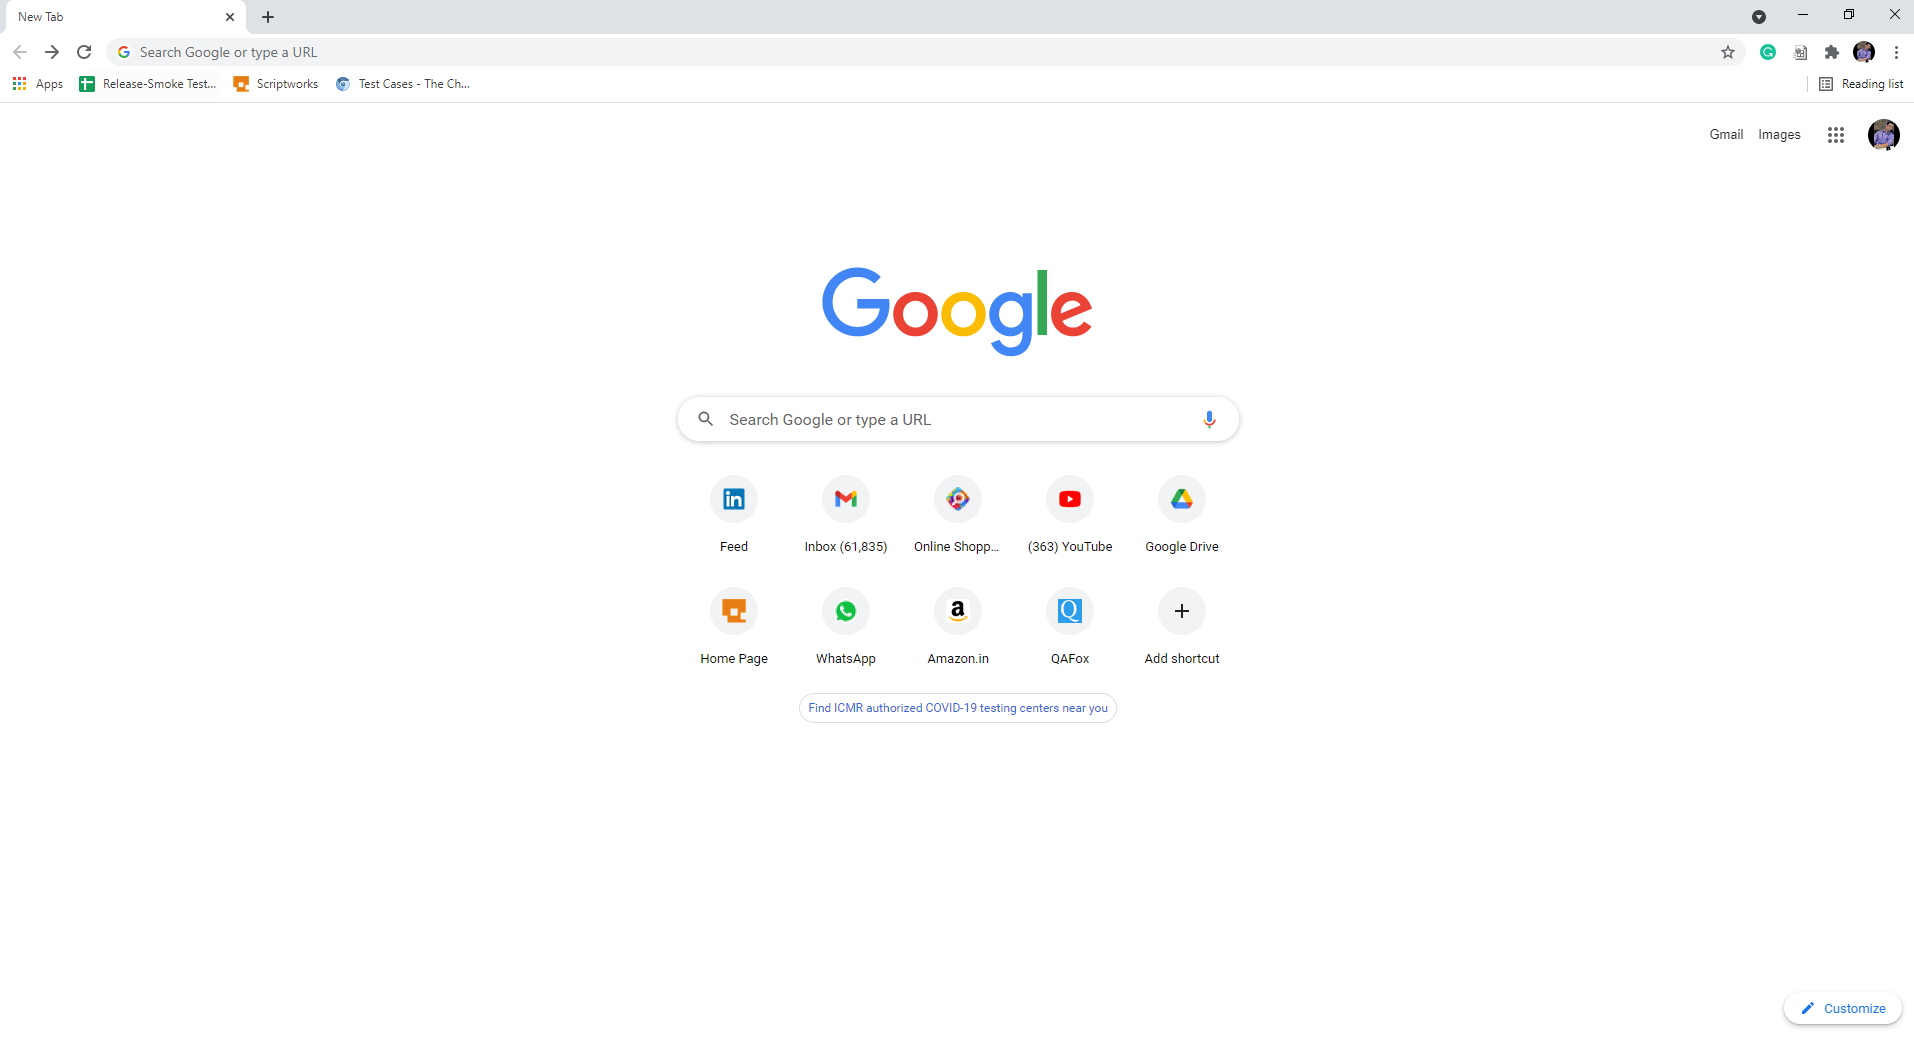 Navigate to any browser